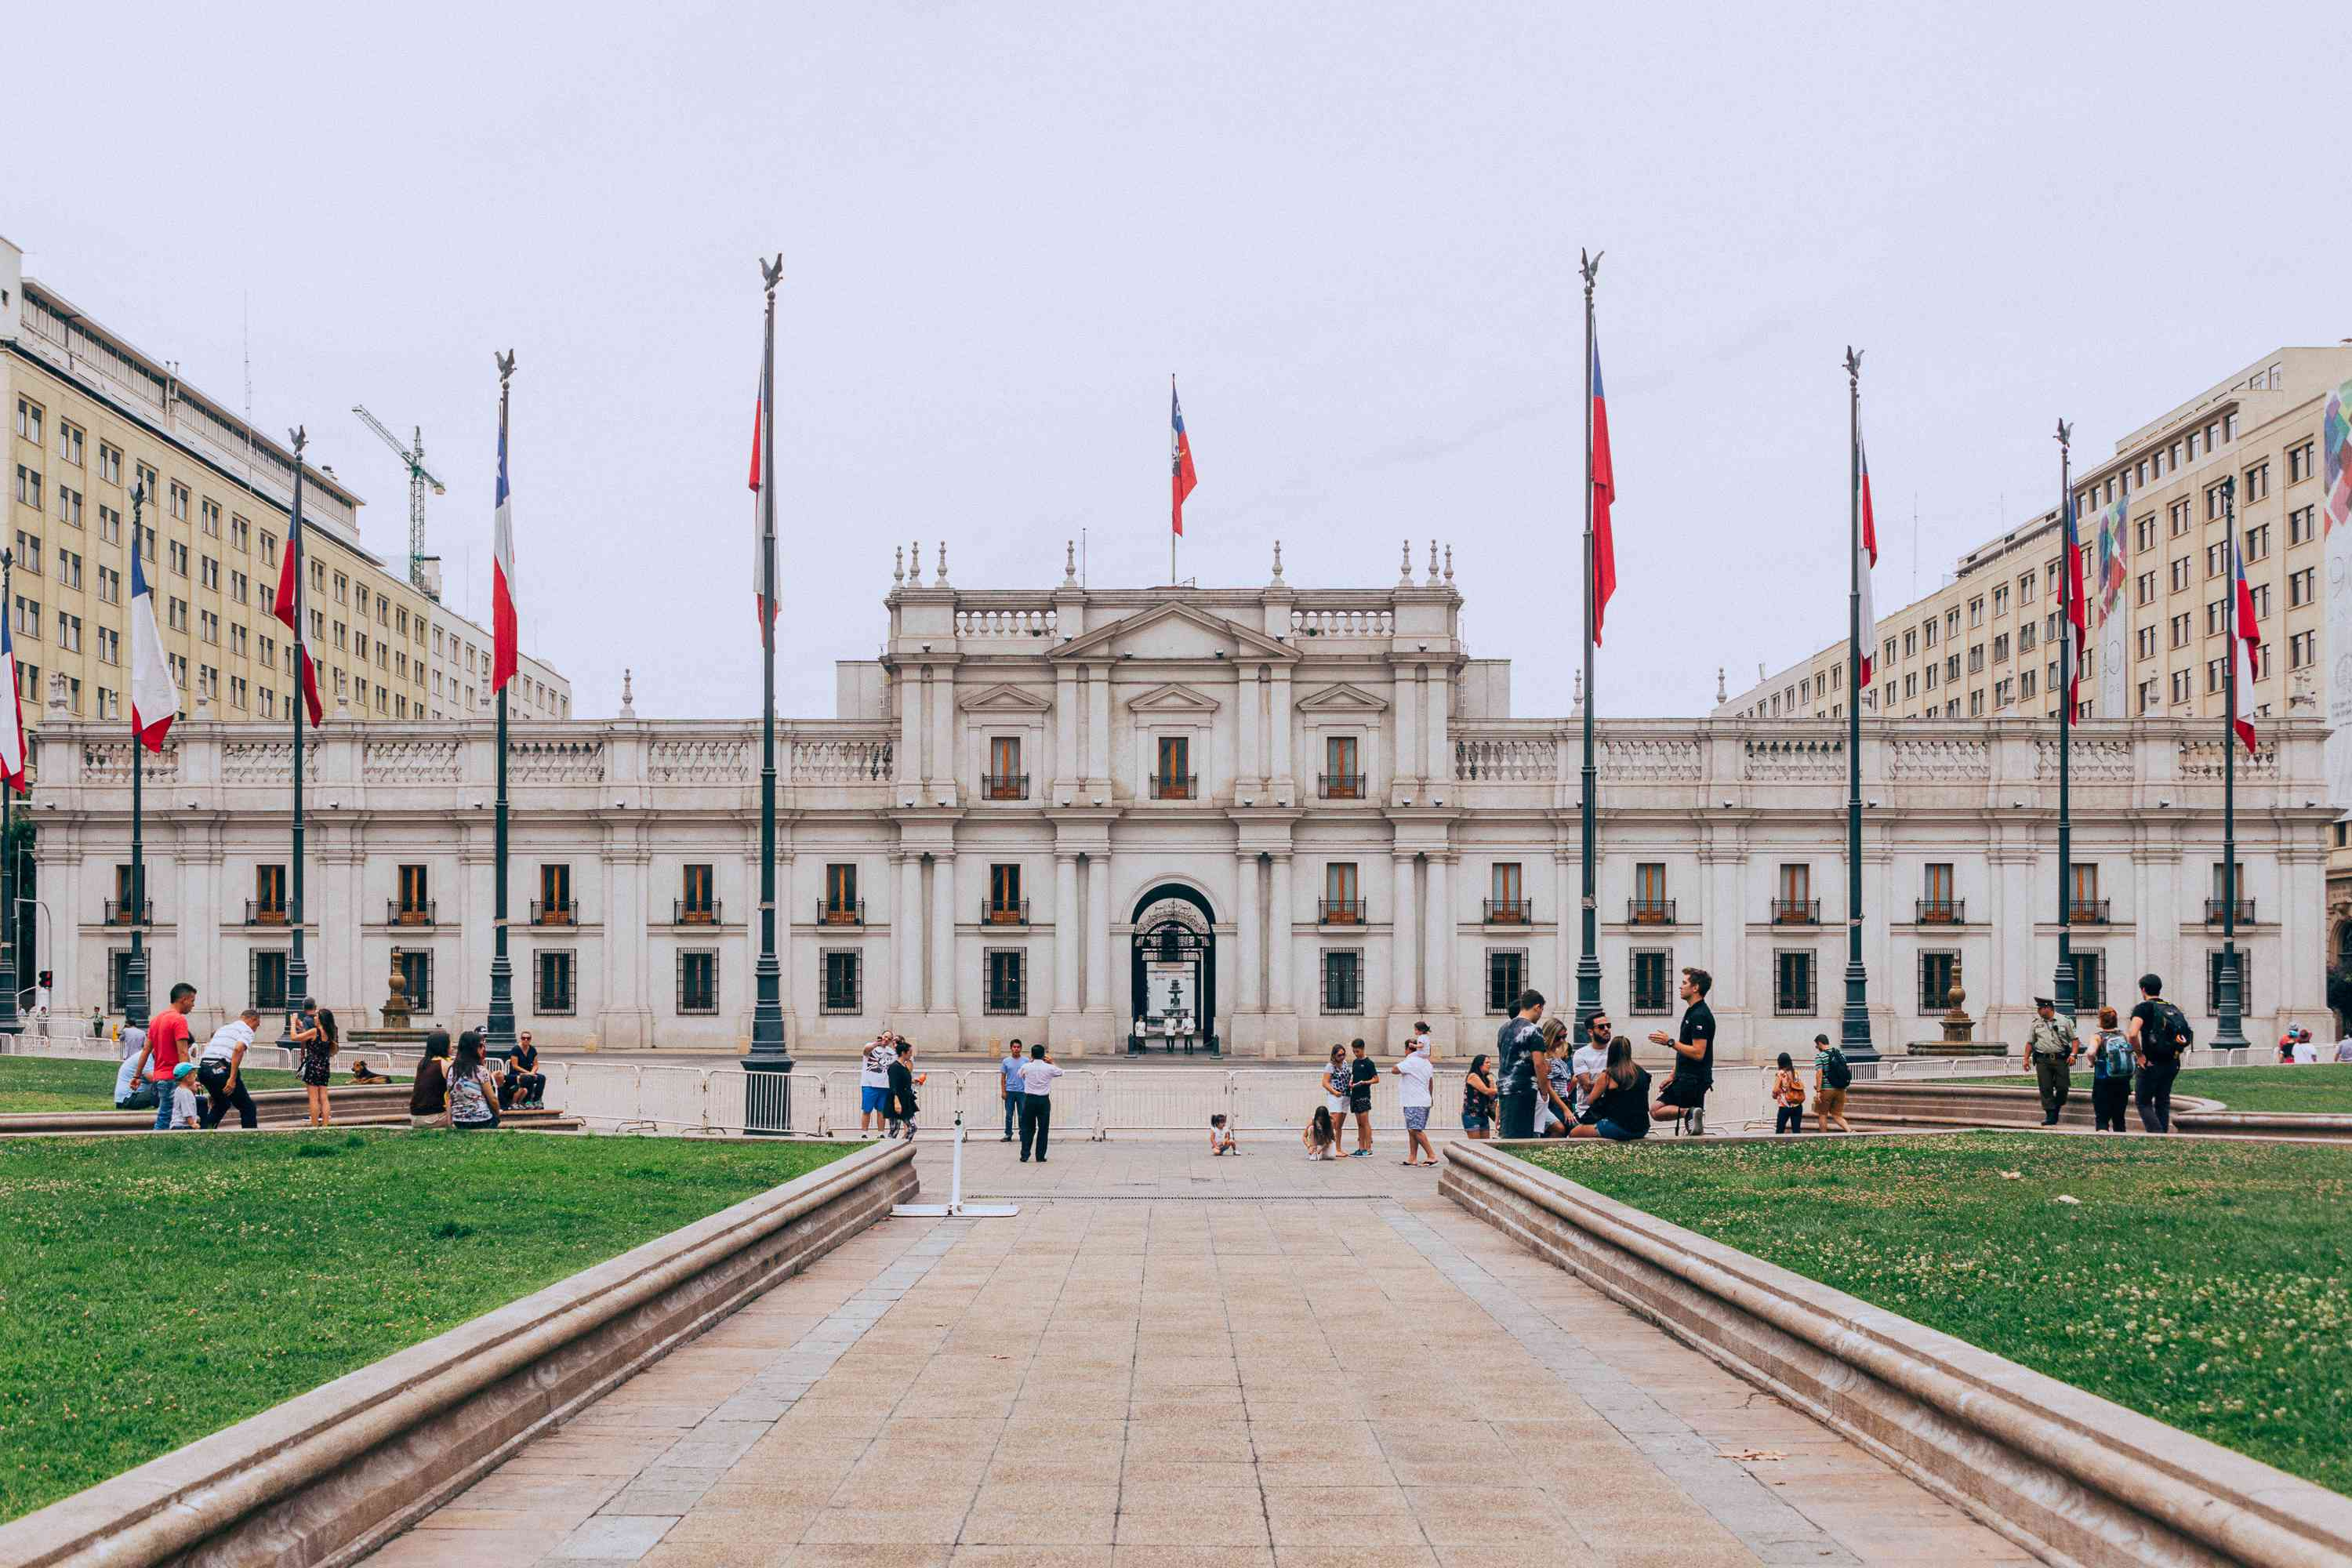 People standing outside the Palace